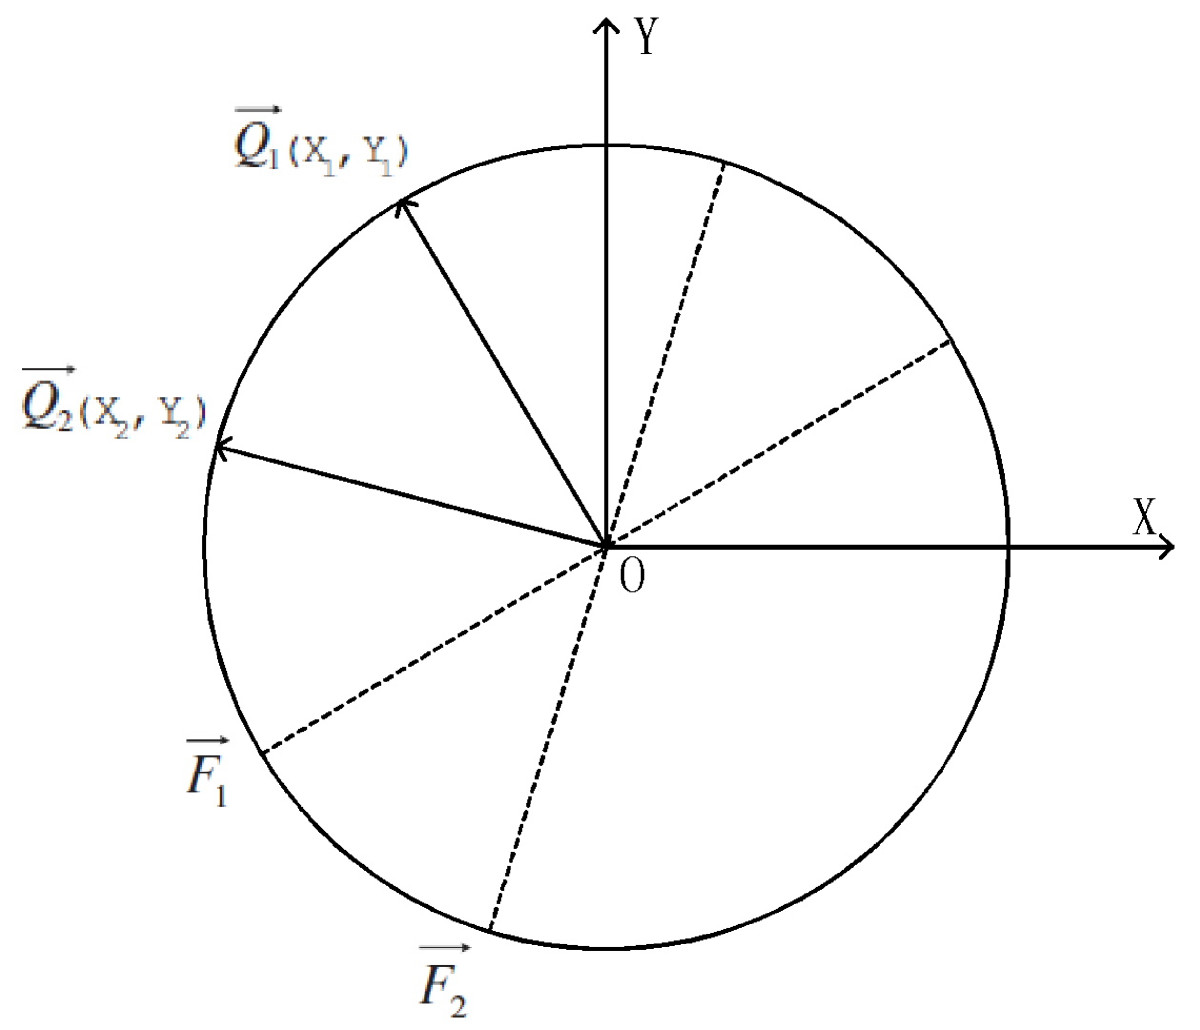 https://static-content.springer.com/image/art%3A10.1186%2F1471-2342-10-12/MediaObjects/12880_2009_Article_89_Fig9_HTML.jpg